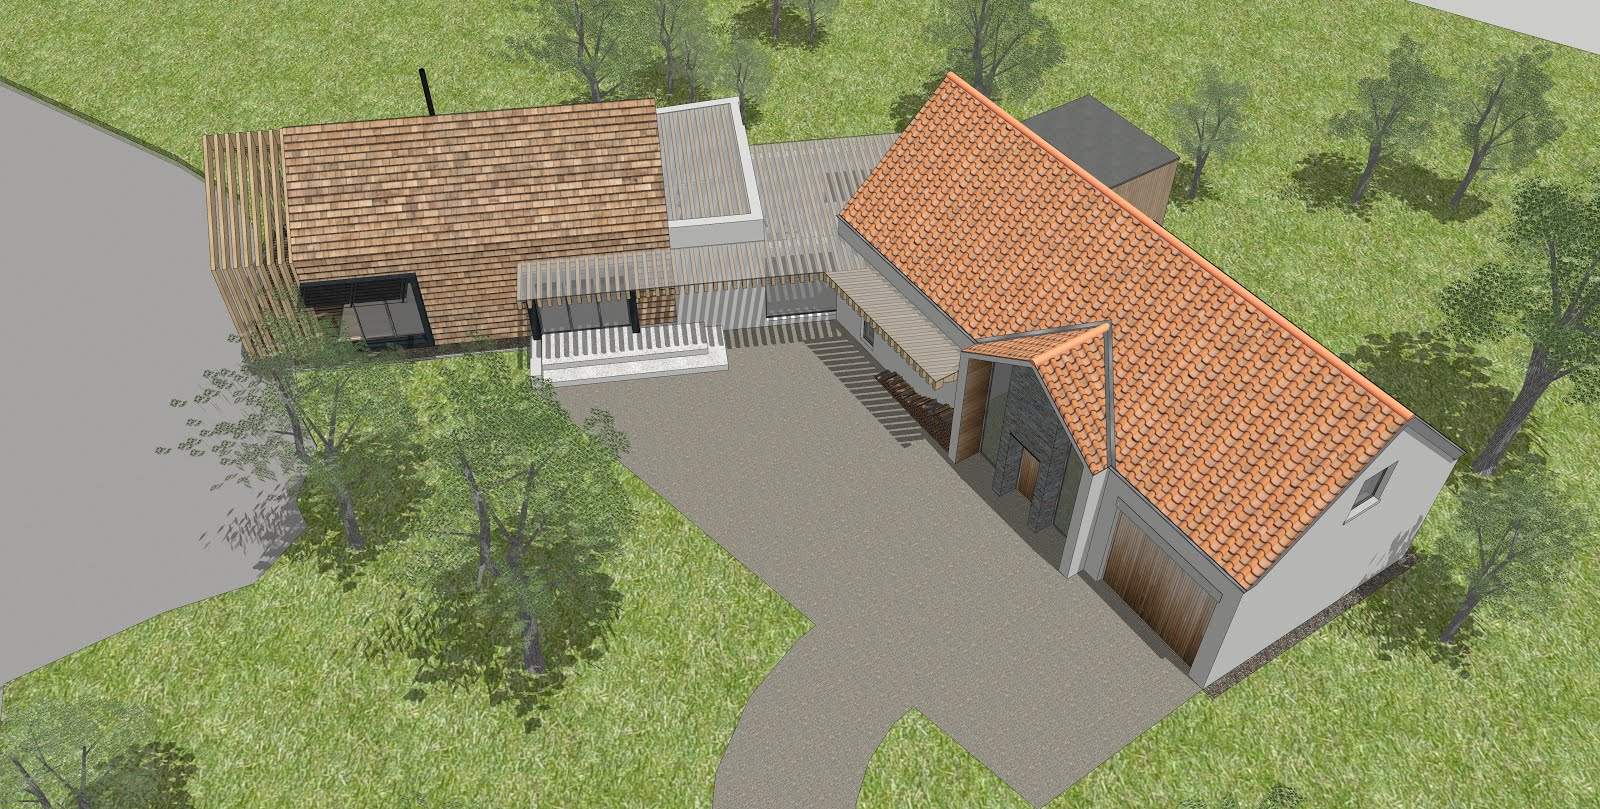 Oak framed house gets planning permission peregrine mears architects aerial view of scheme baanklon Gallery